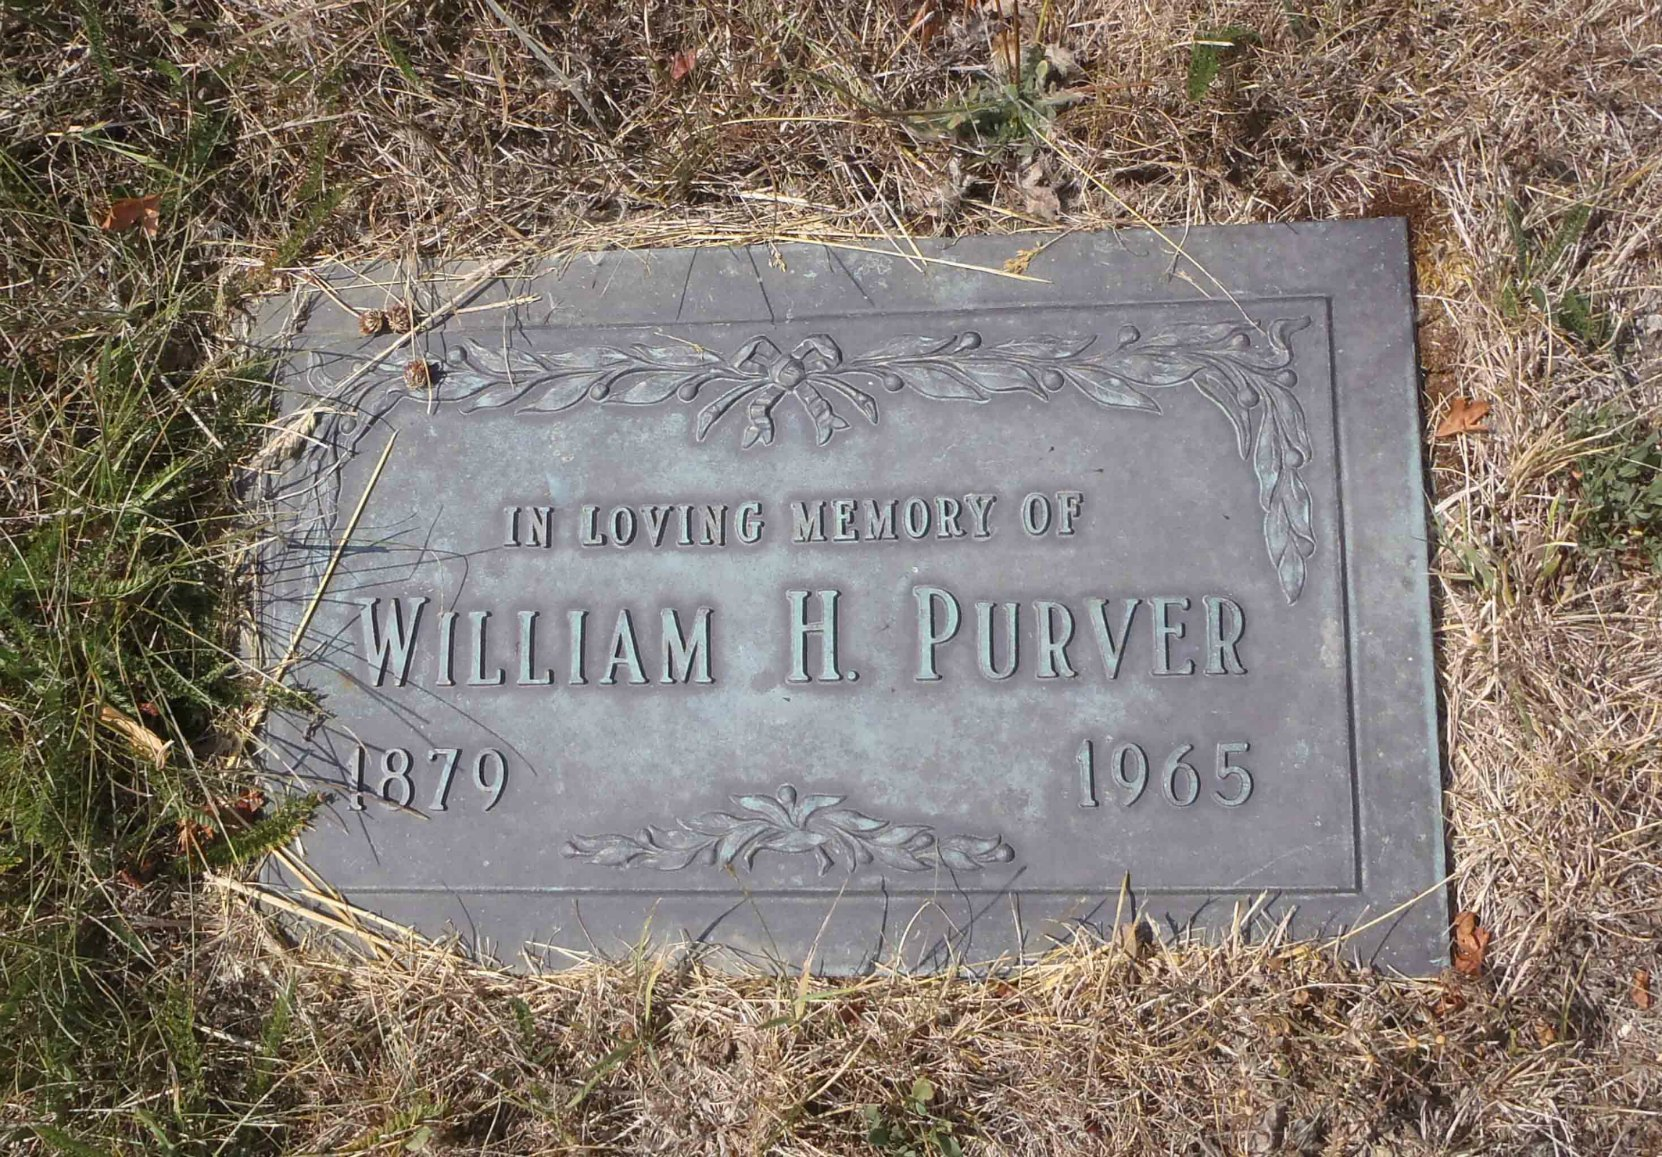 William Harrington Purver grave marker, St. Mary's Somenos cemetery, North Cowichan